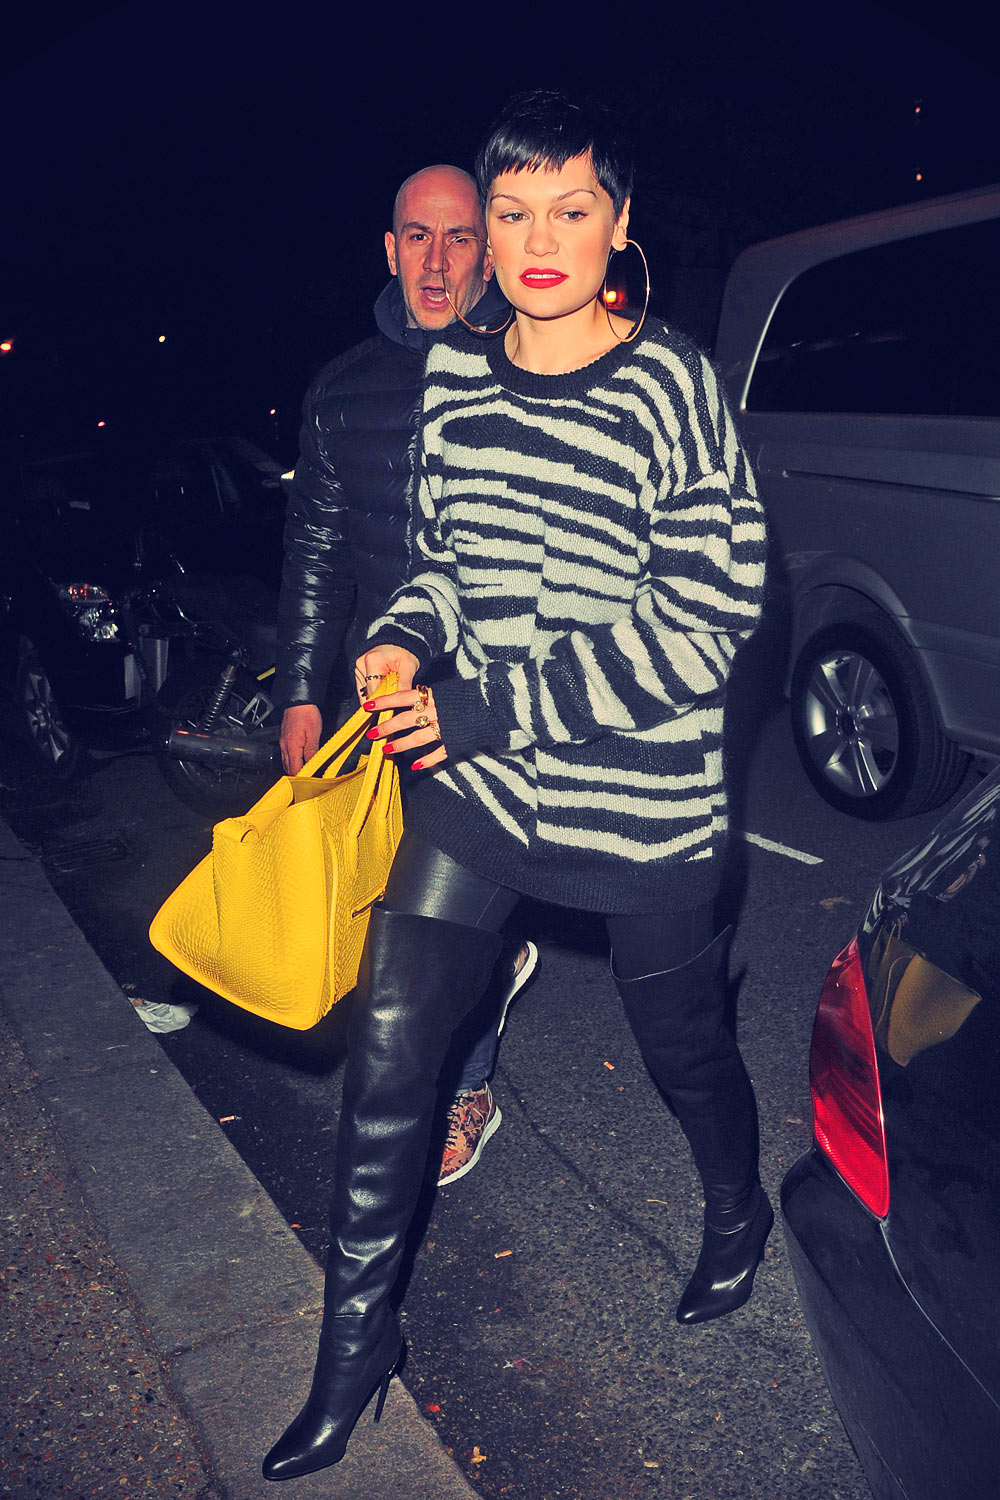 Jessie J This Christmas Day.Jessie J At Studio To Film Top Of The Pops Christmas Day